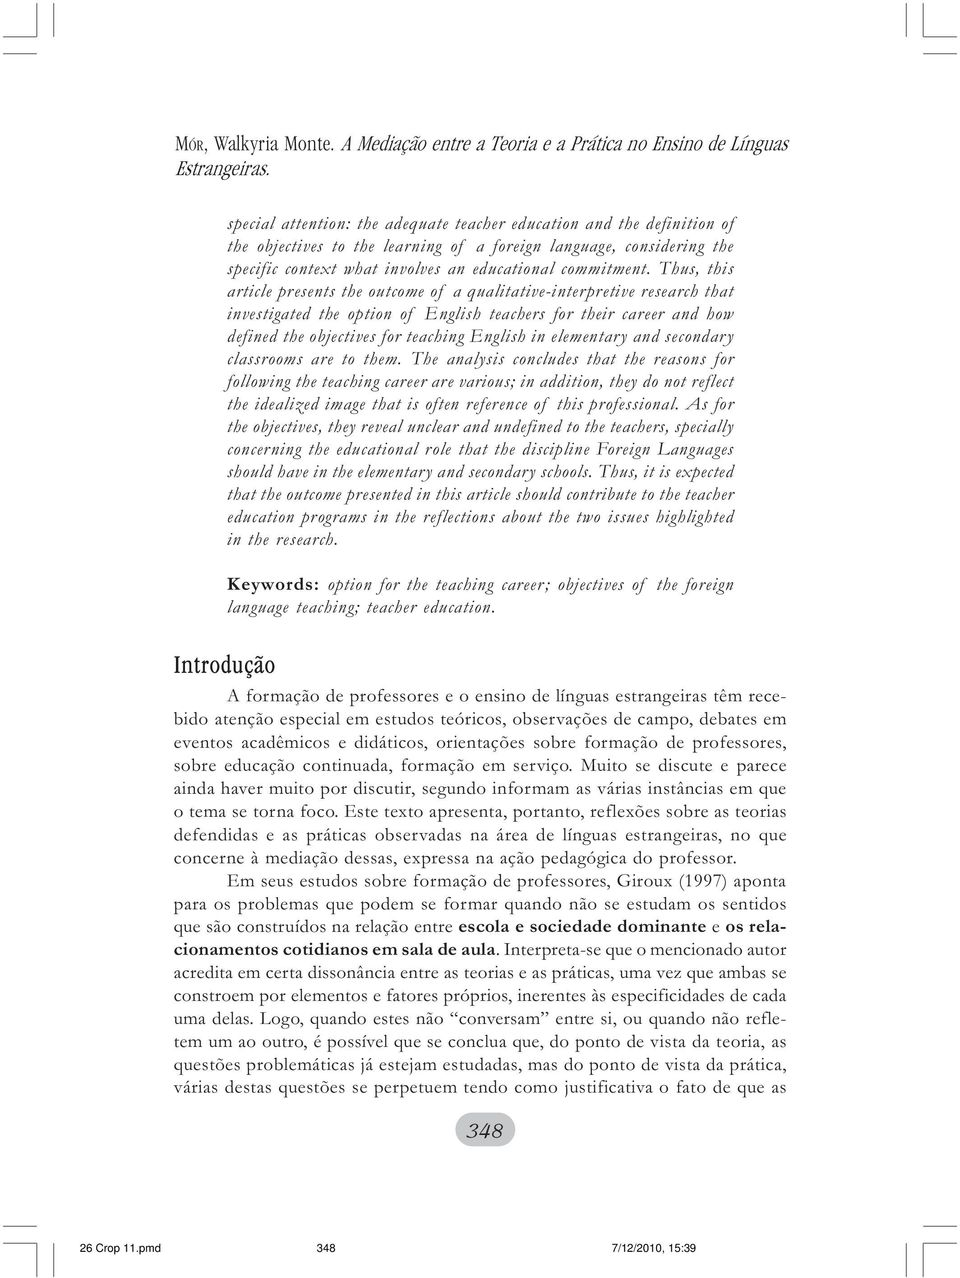 Thus, this article presents the outcome of a qualitative-interpretive research that investigated the option of English teachers for their career and how defined the objectives for teaching English in